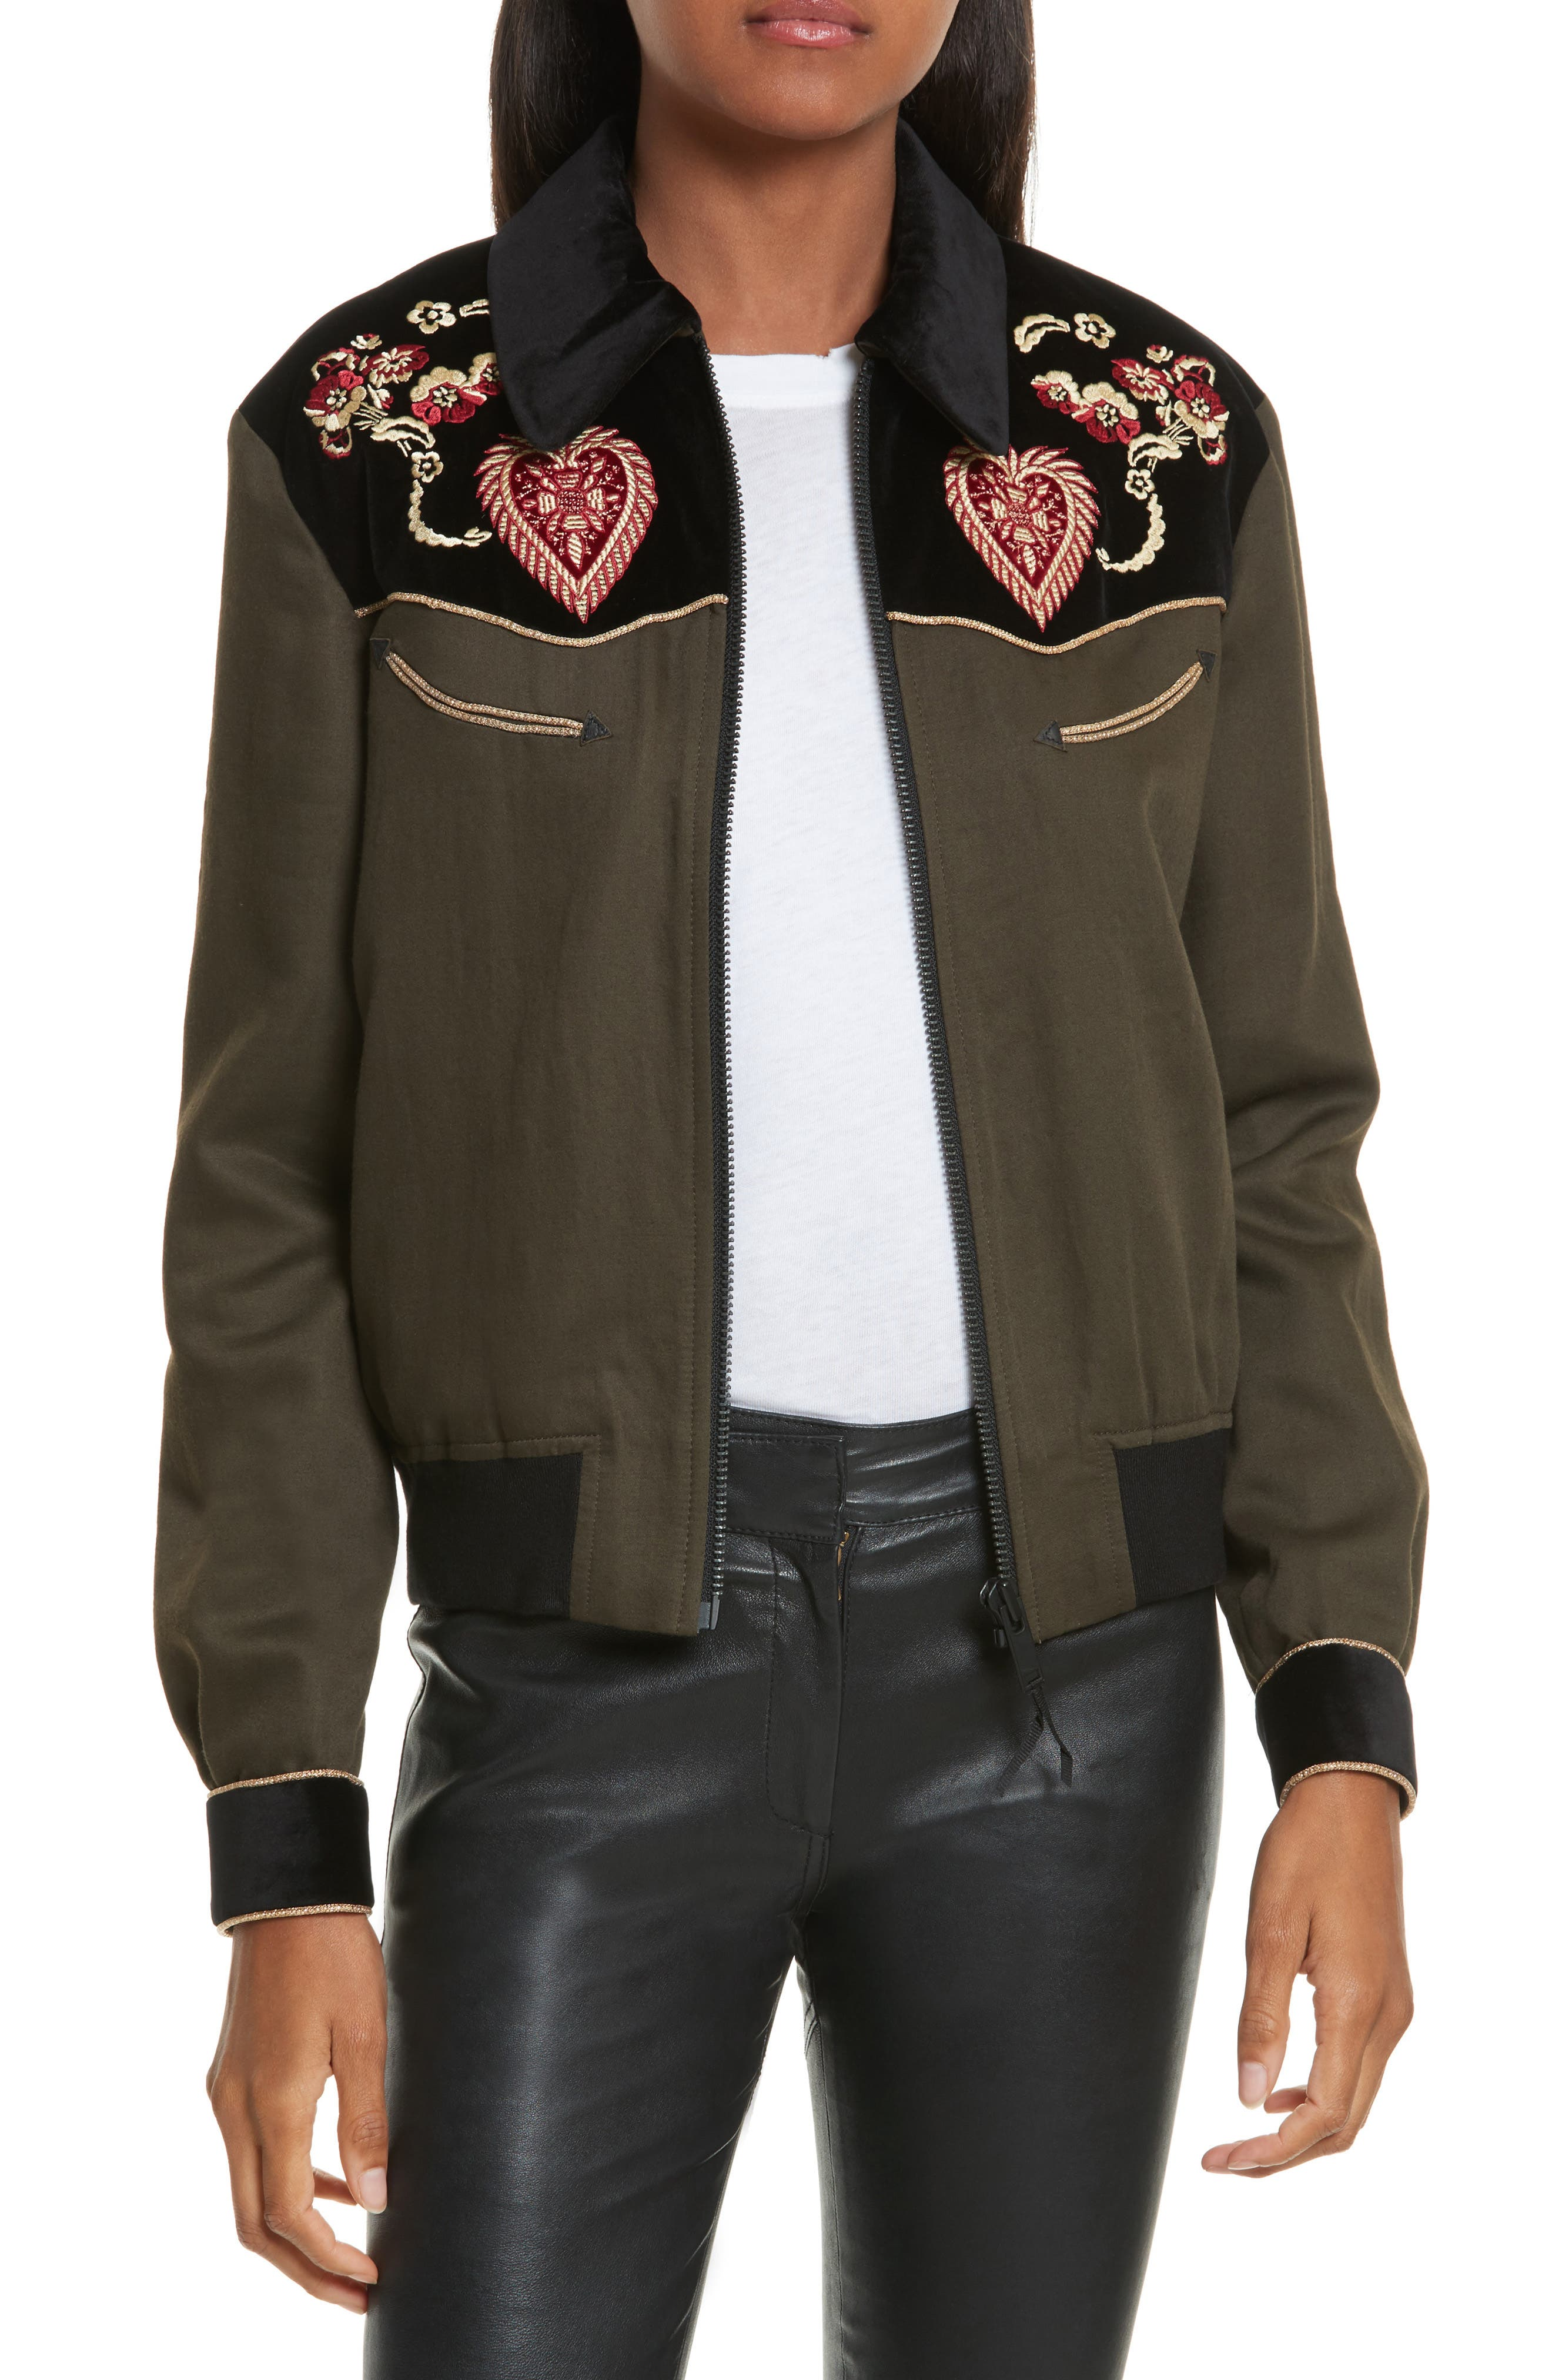 Alternate Image 1 Selected - The Kooples Contrast Embroidery Bomber Jacket